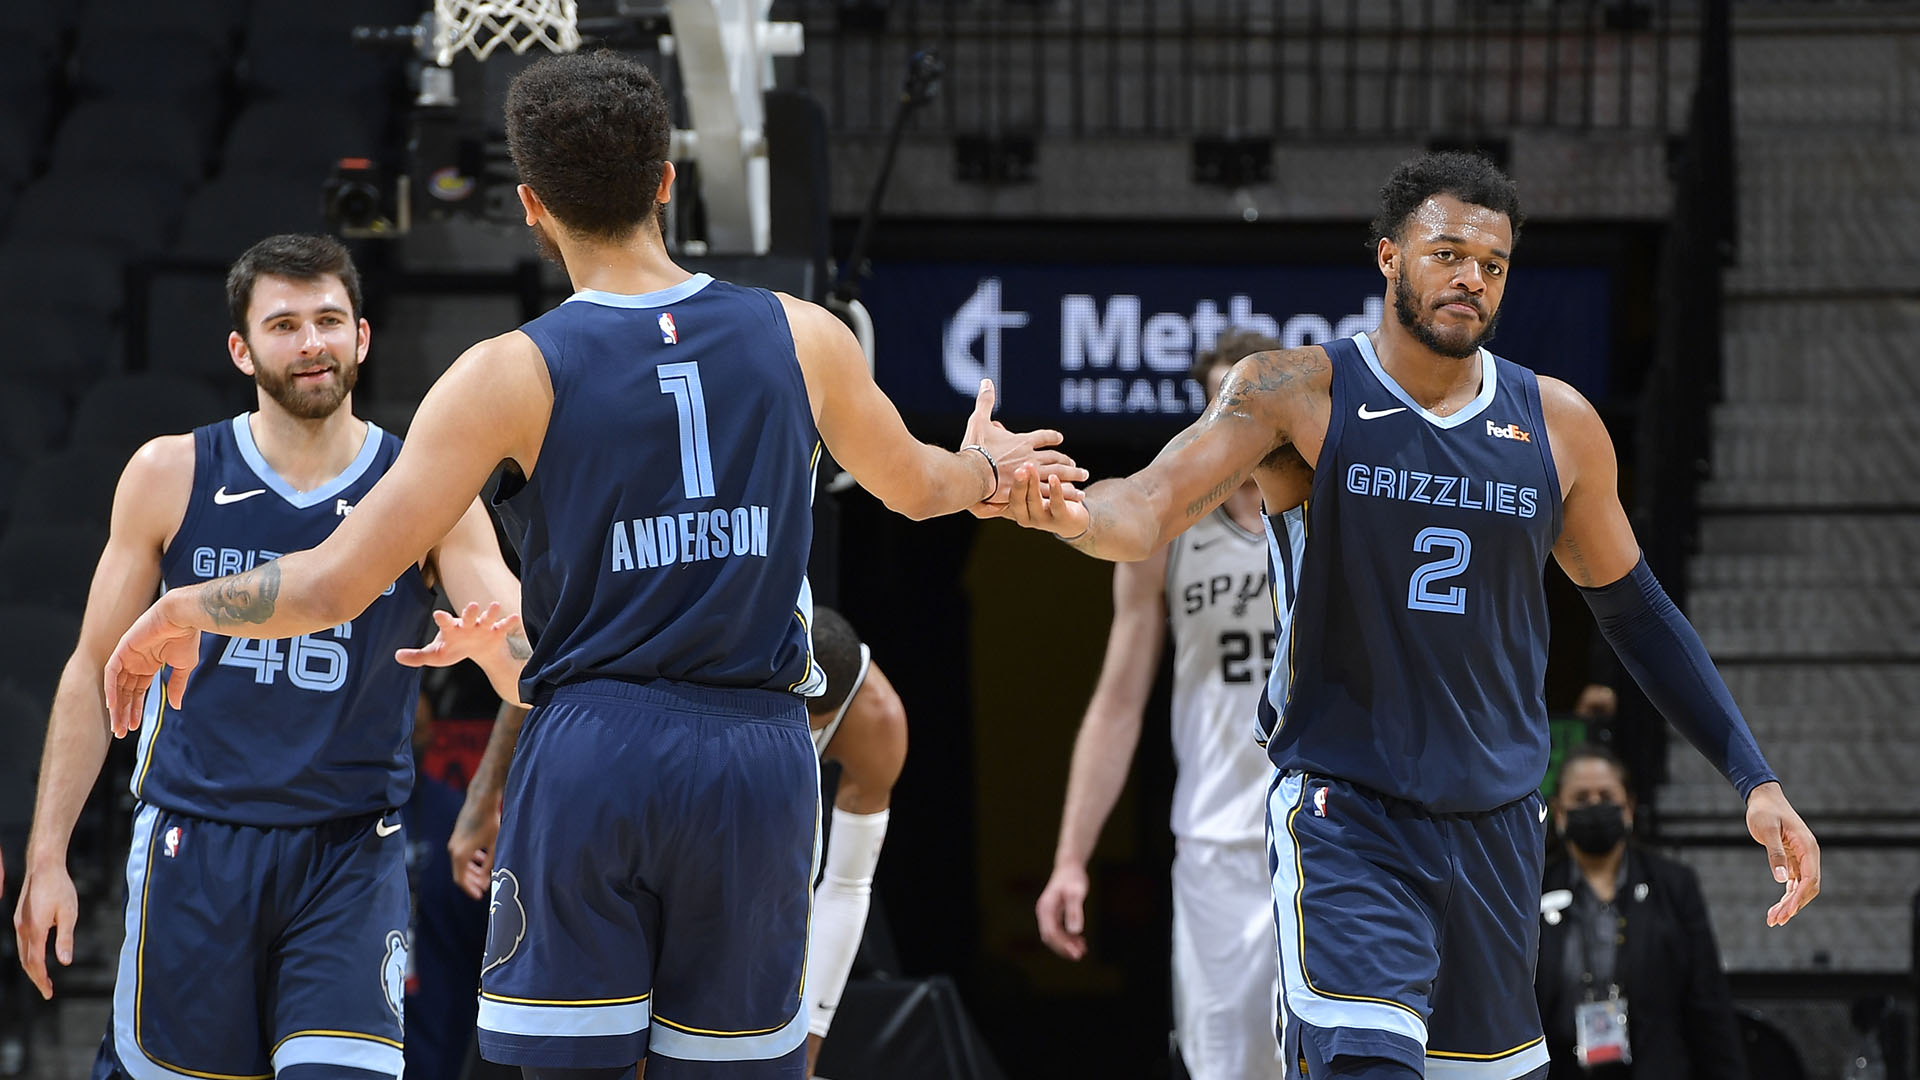 Grizzlies ride depth to 7th straight victory with rout of Spurs